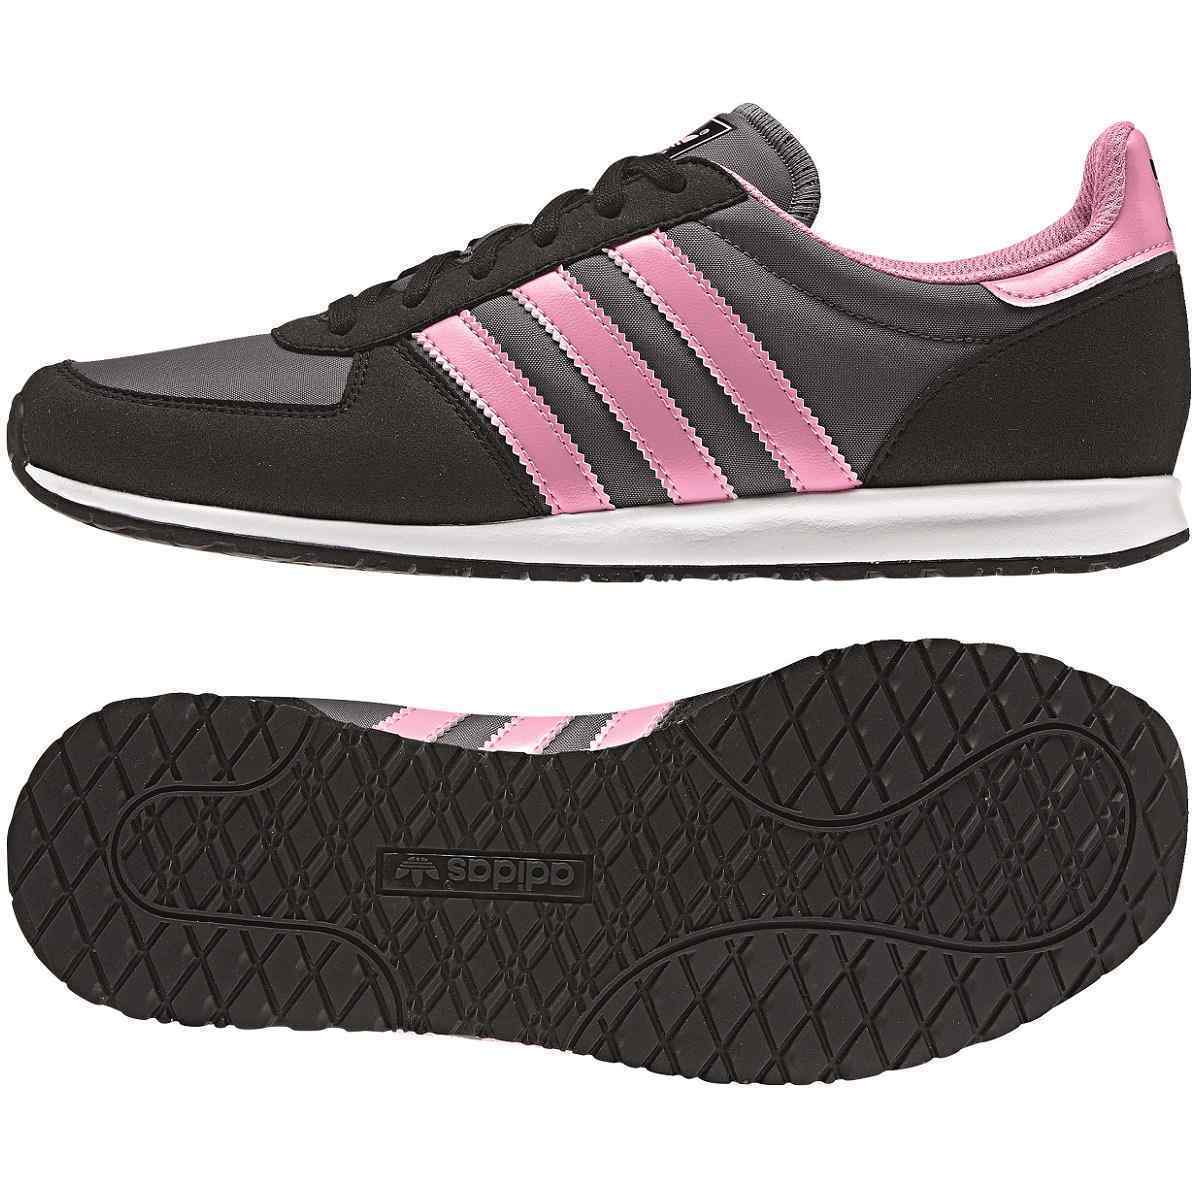 adidas originals adistar racer schuhe sneaker herren damen. Black Bedroom Furniture Sets. Home Design Ideas